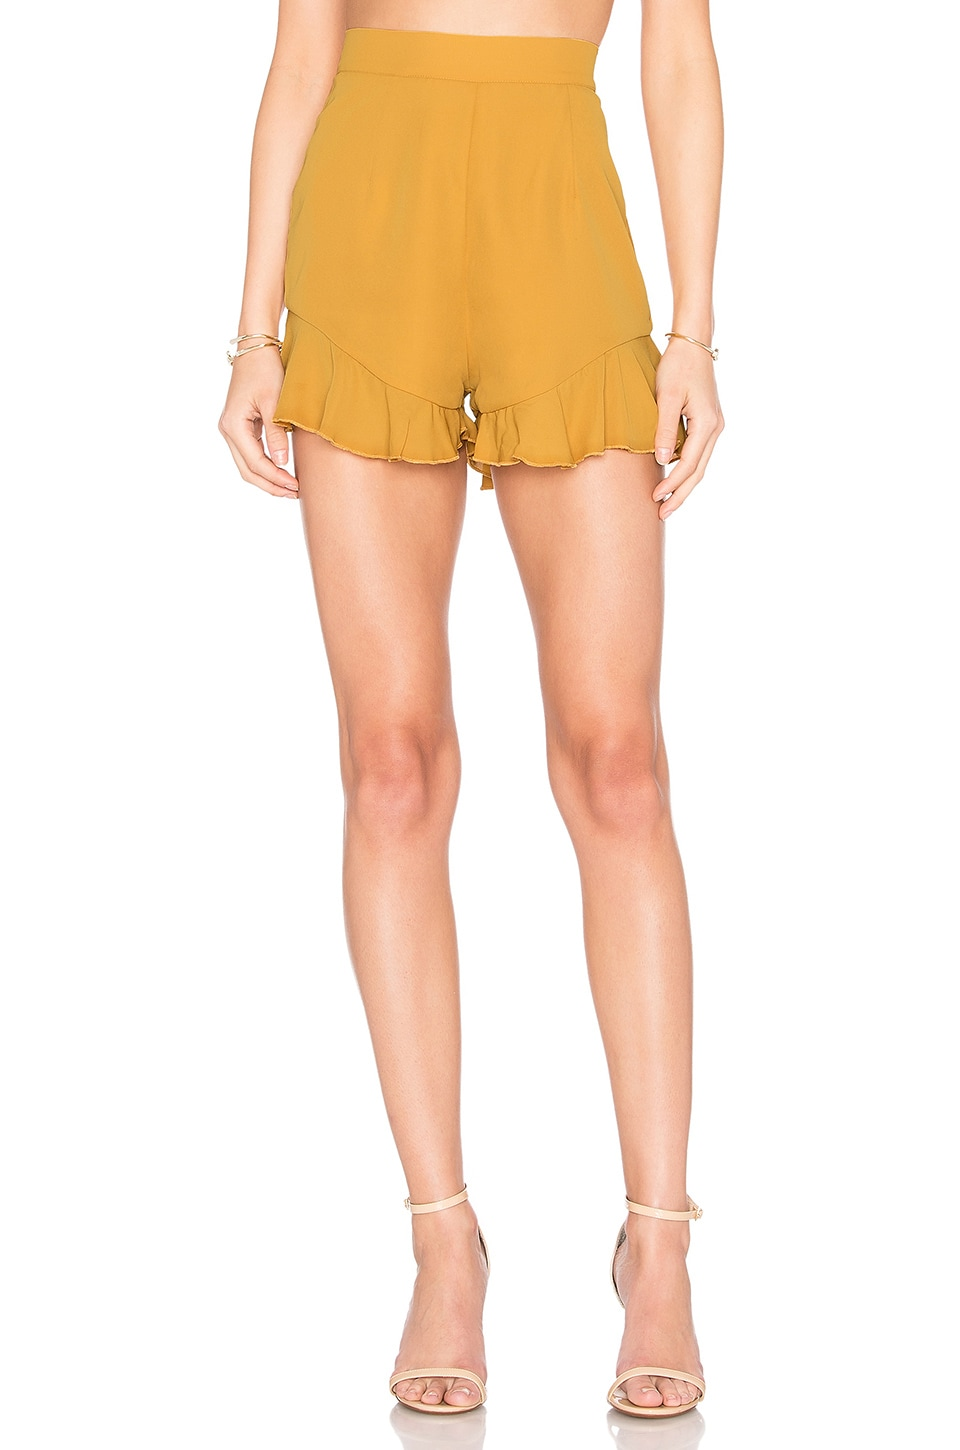 LIONESS Sanchez Ruffle Short in Mustard